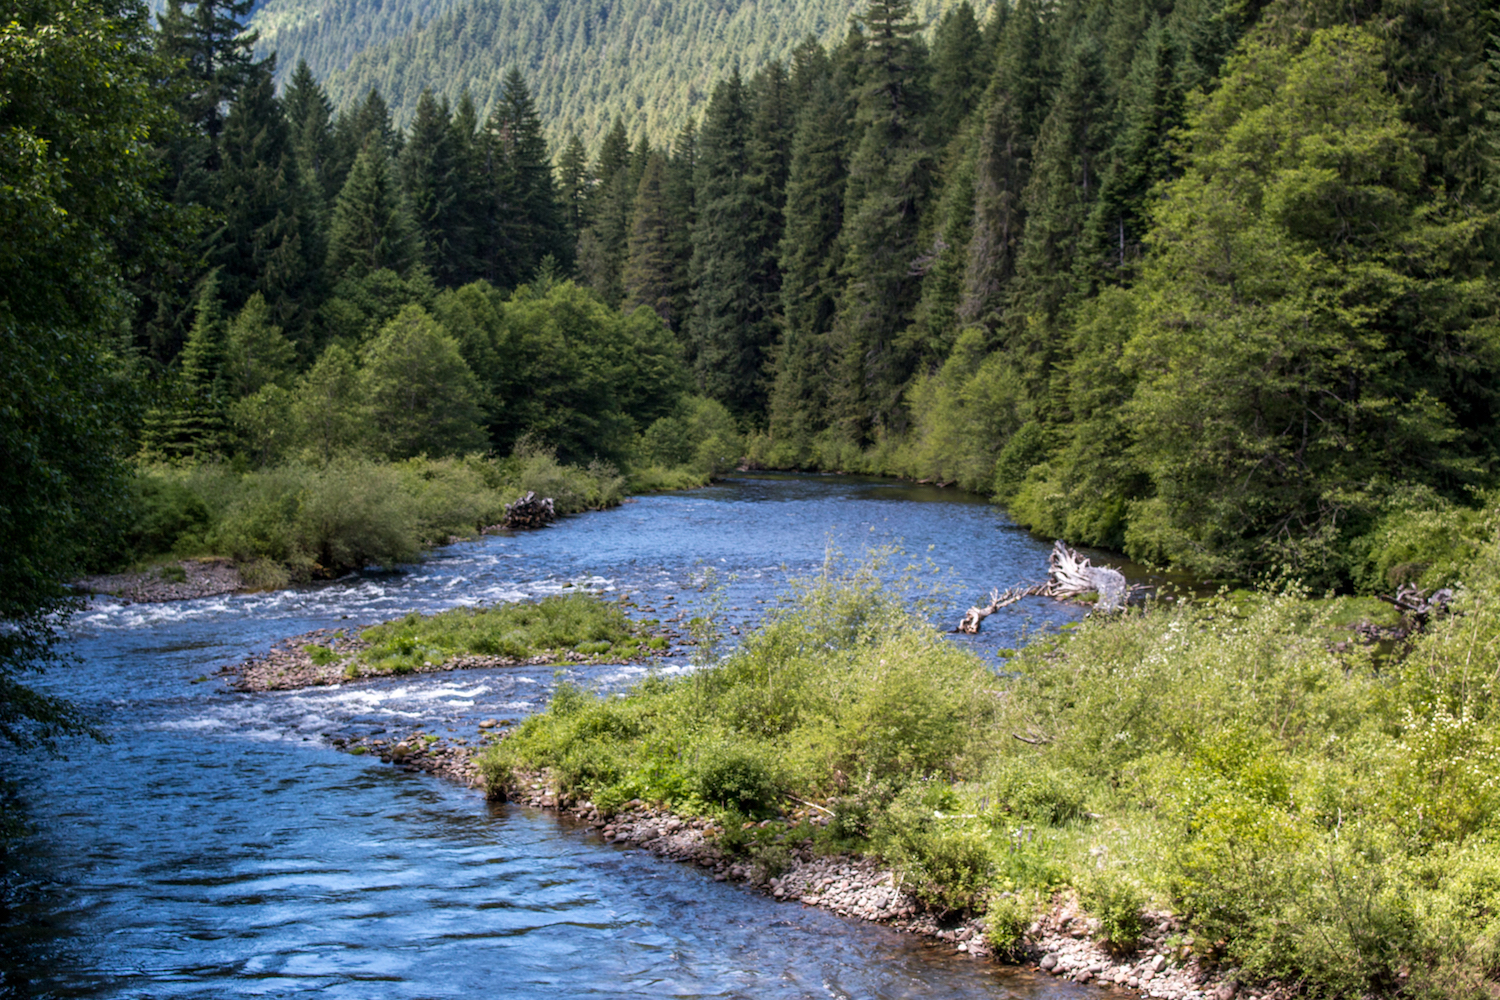 Miles of prime spawning habitat lies inaccessible to Wild Spring Chinook in the upper North Santiam Basin